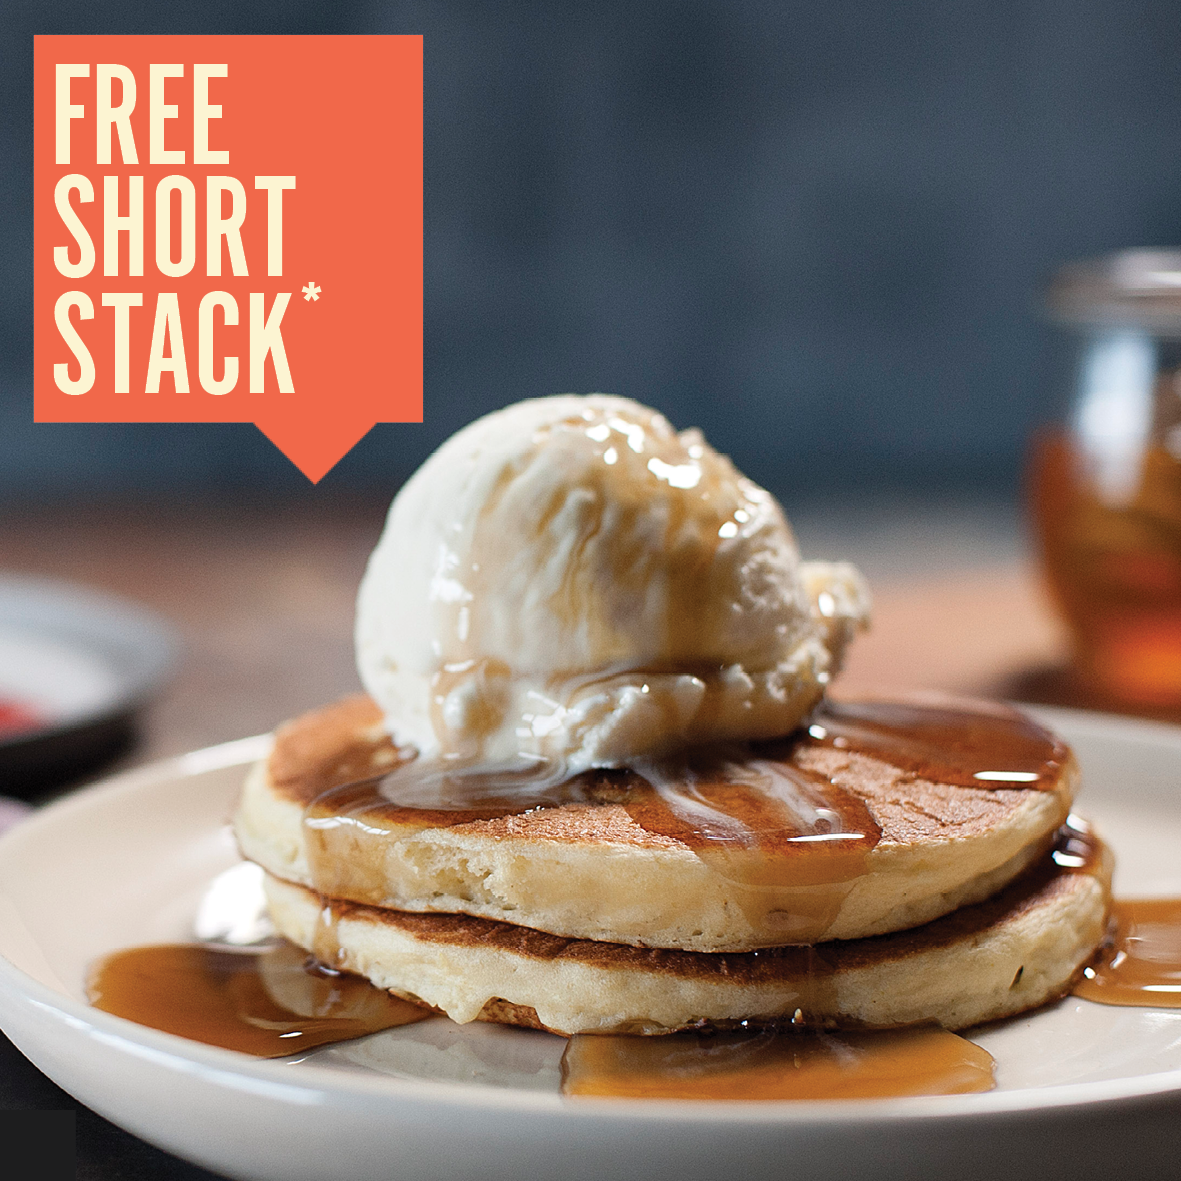 Free_short_Stack (1).png